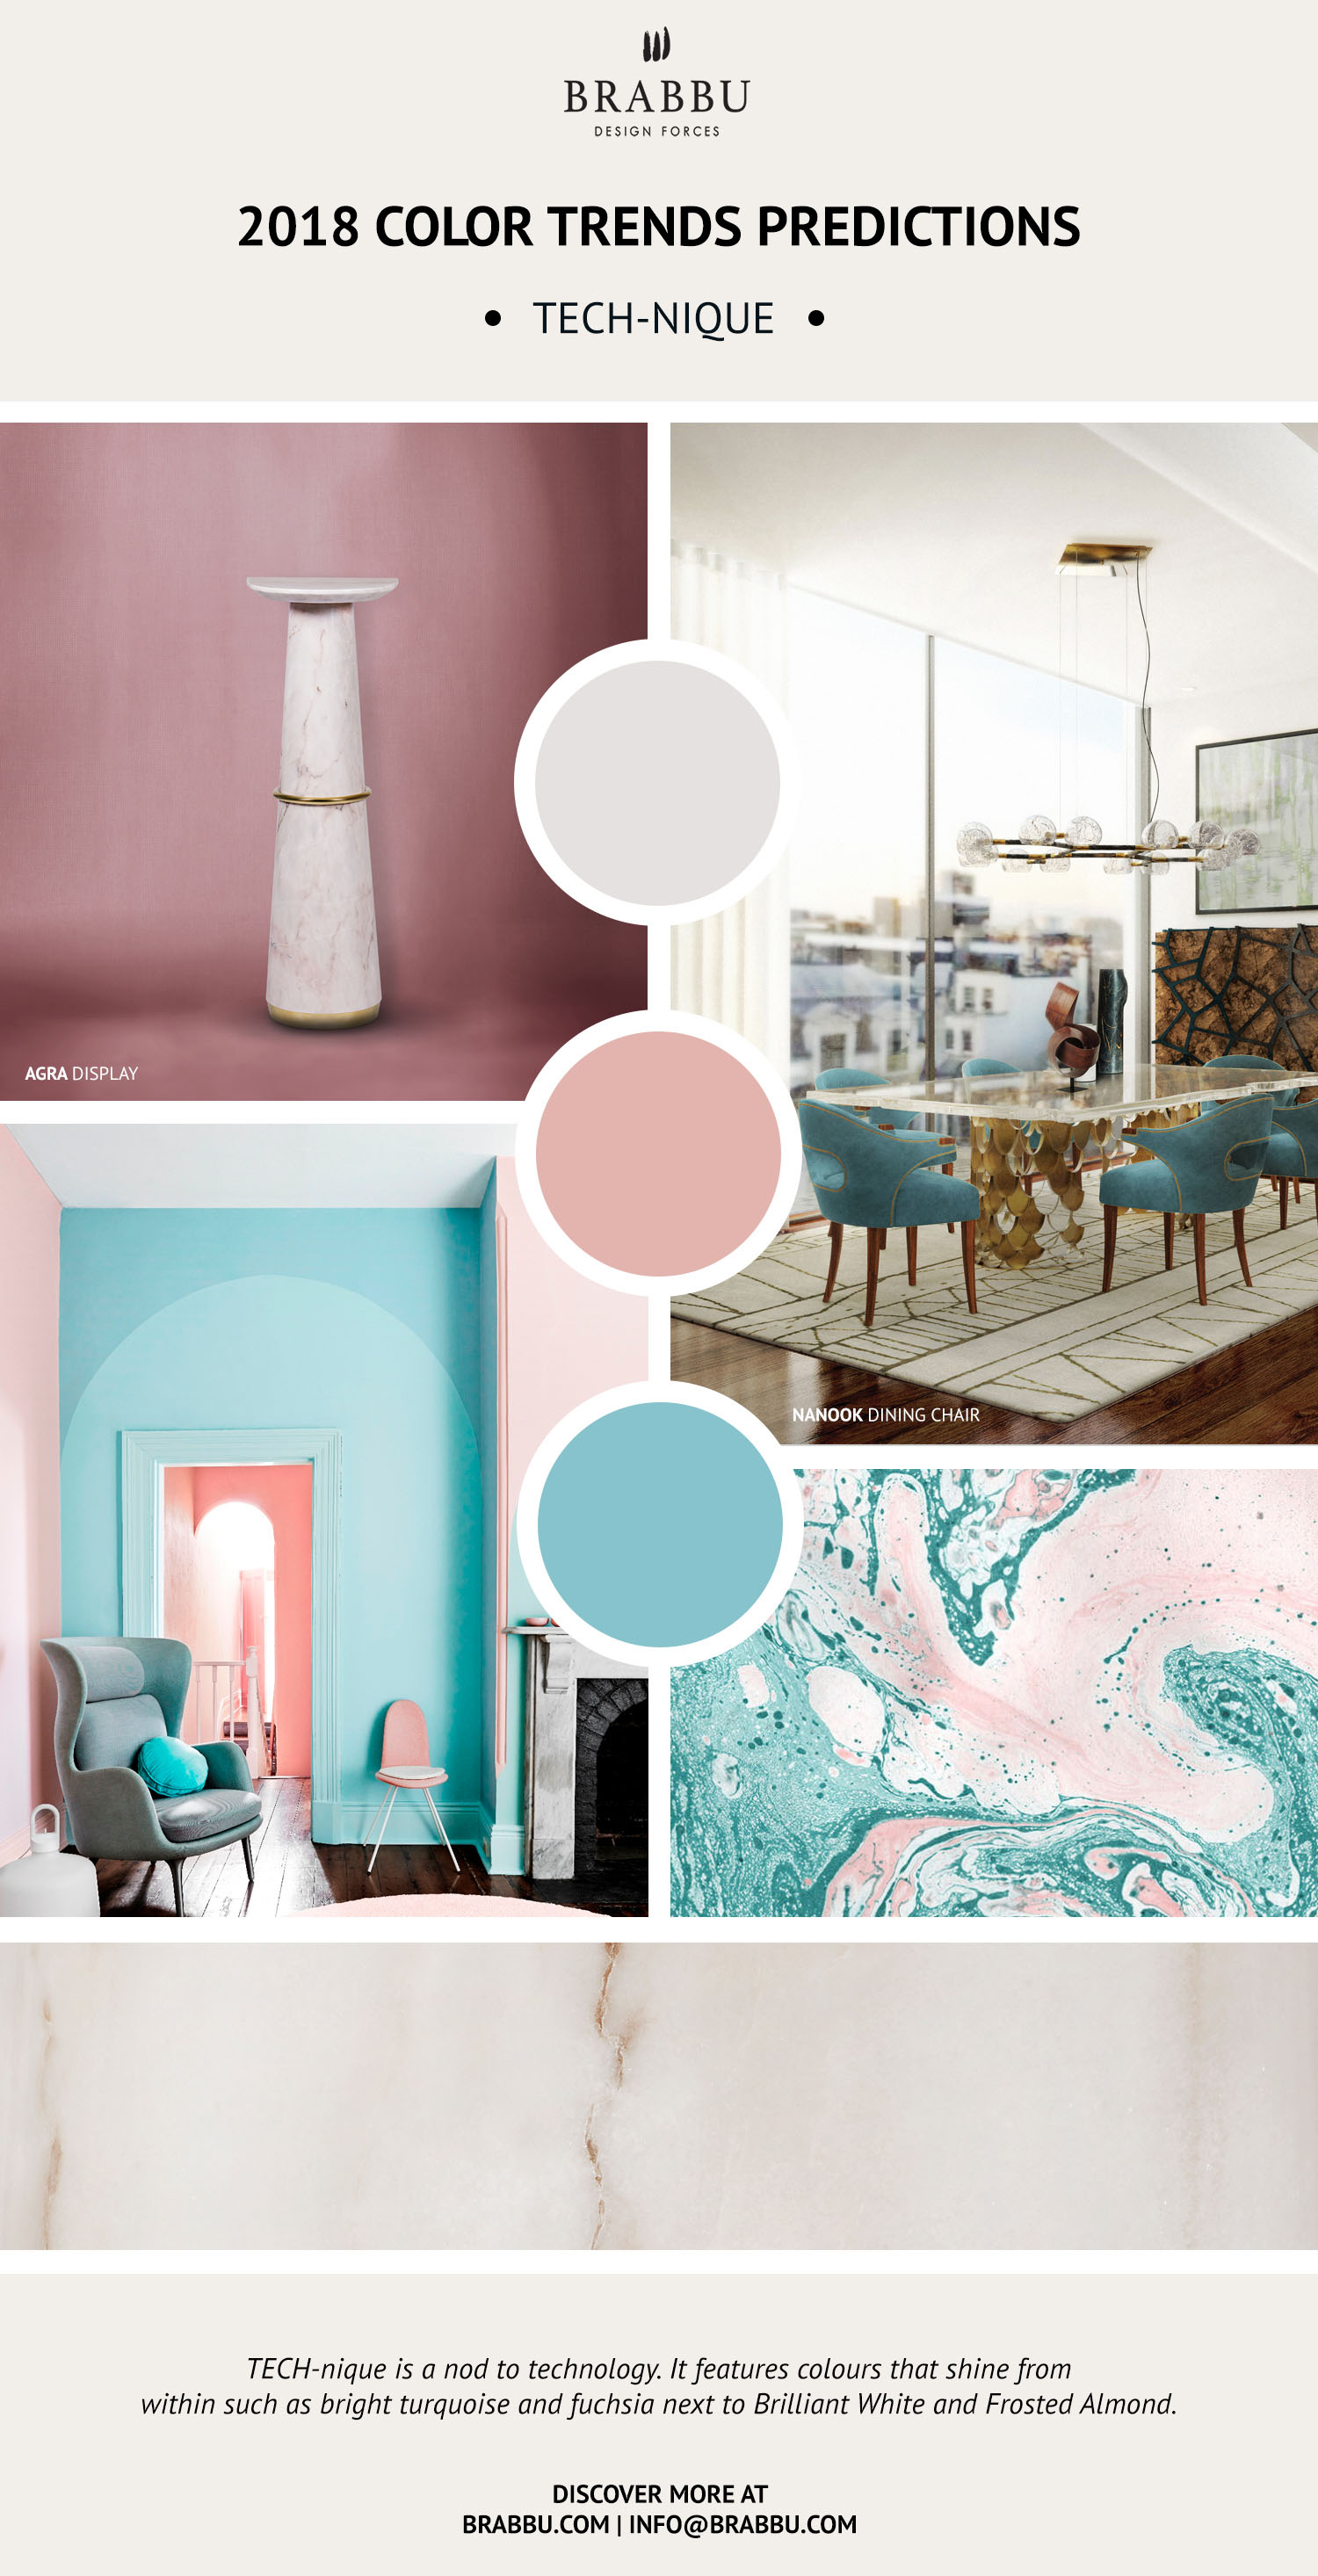 color trend Pantone Color Trend Predictions For 2018 6 1 modern Rugs design Incredible Spring Color Ideas for modern Rugs design 6 1